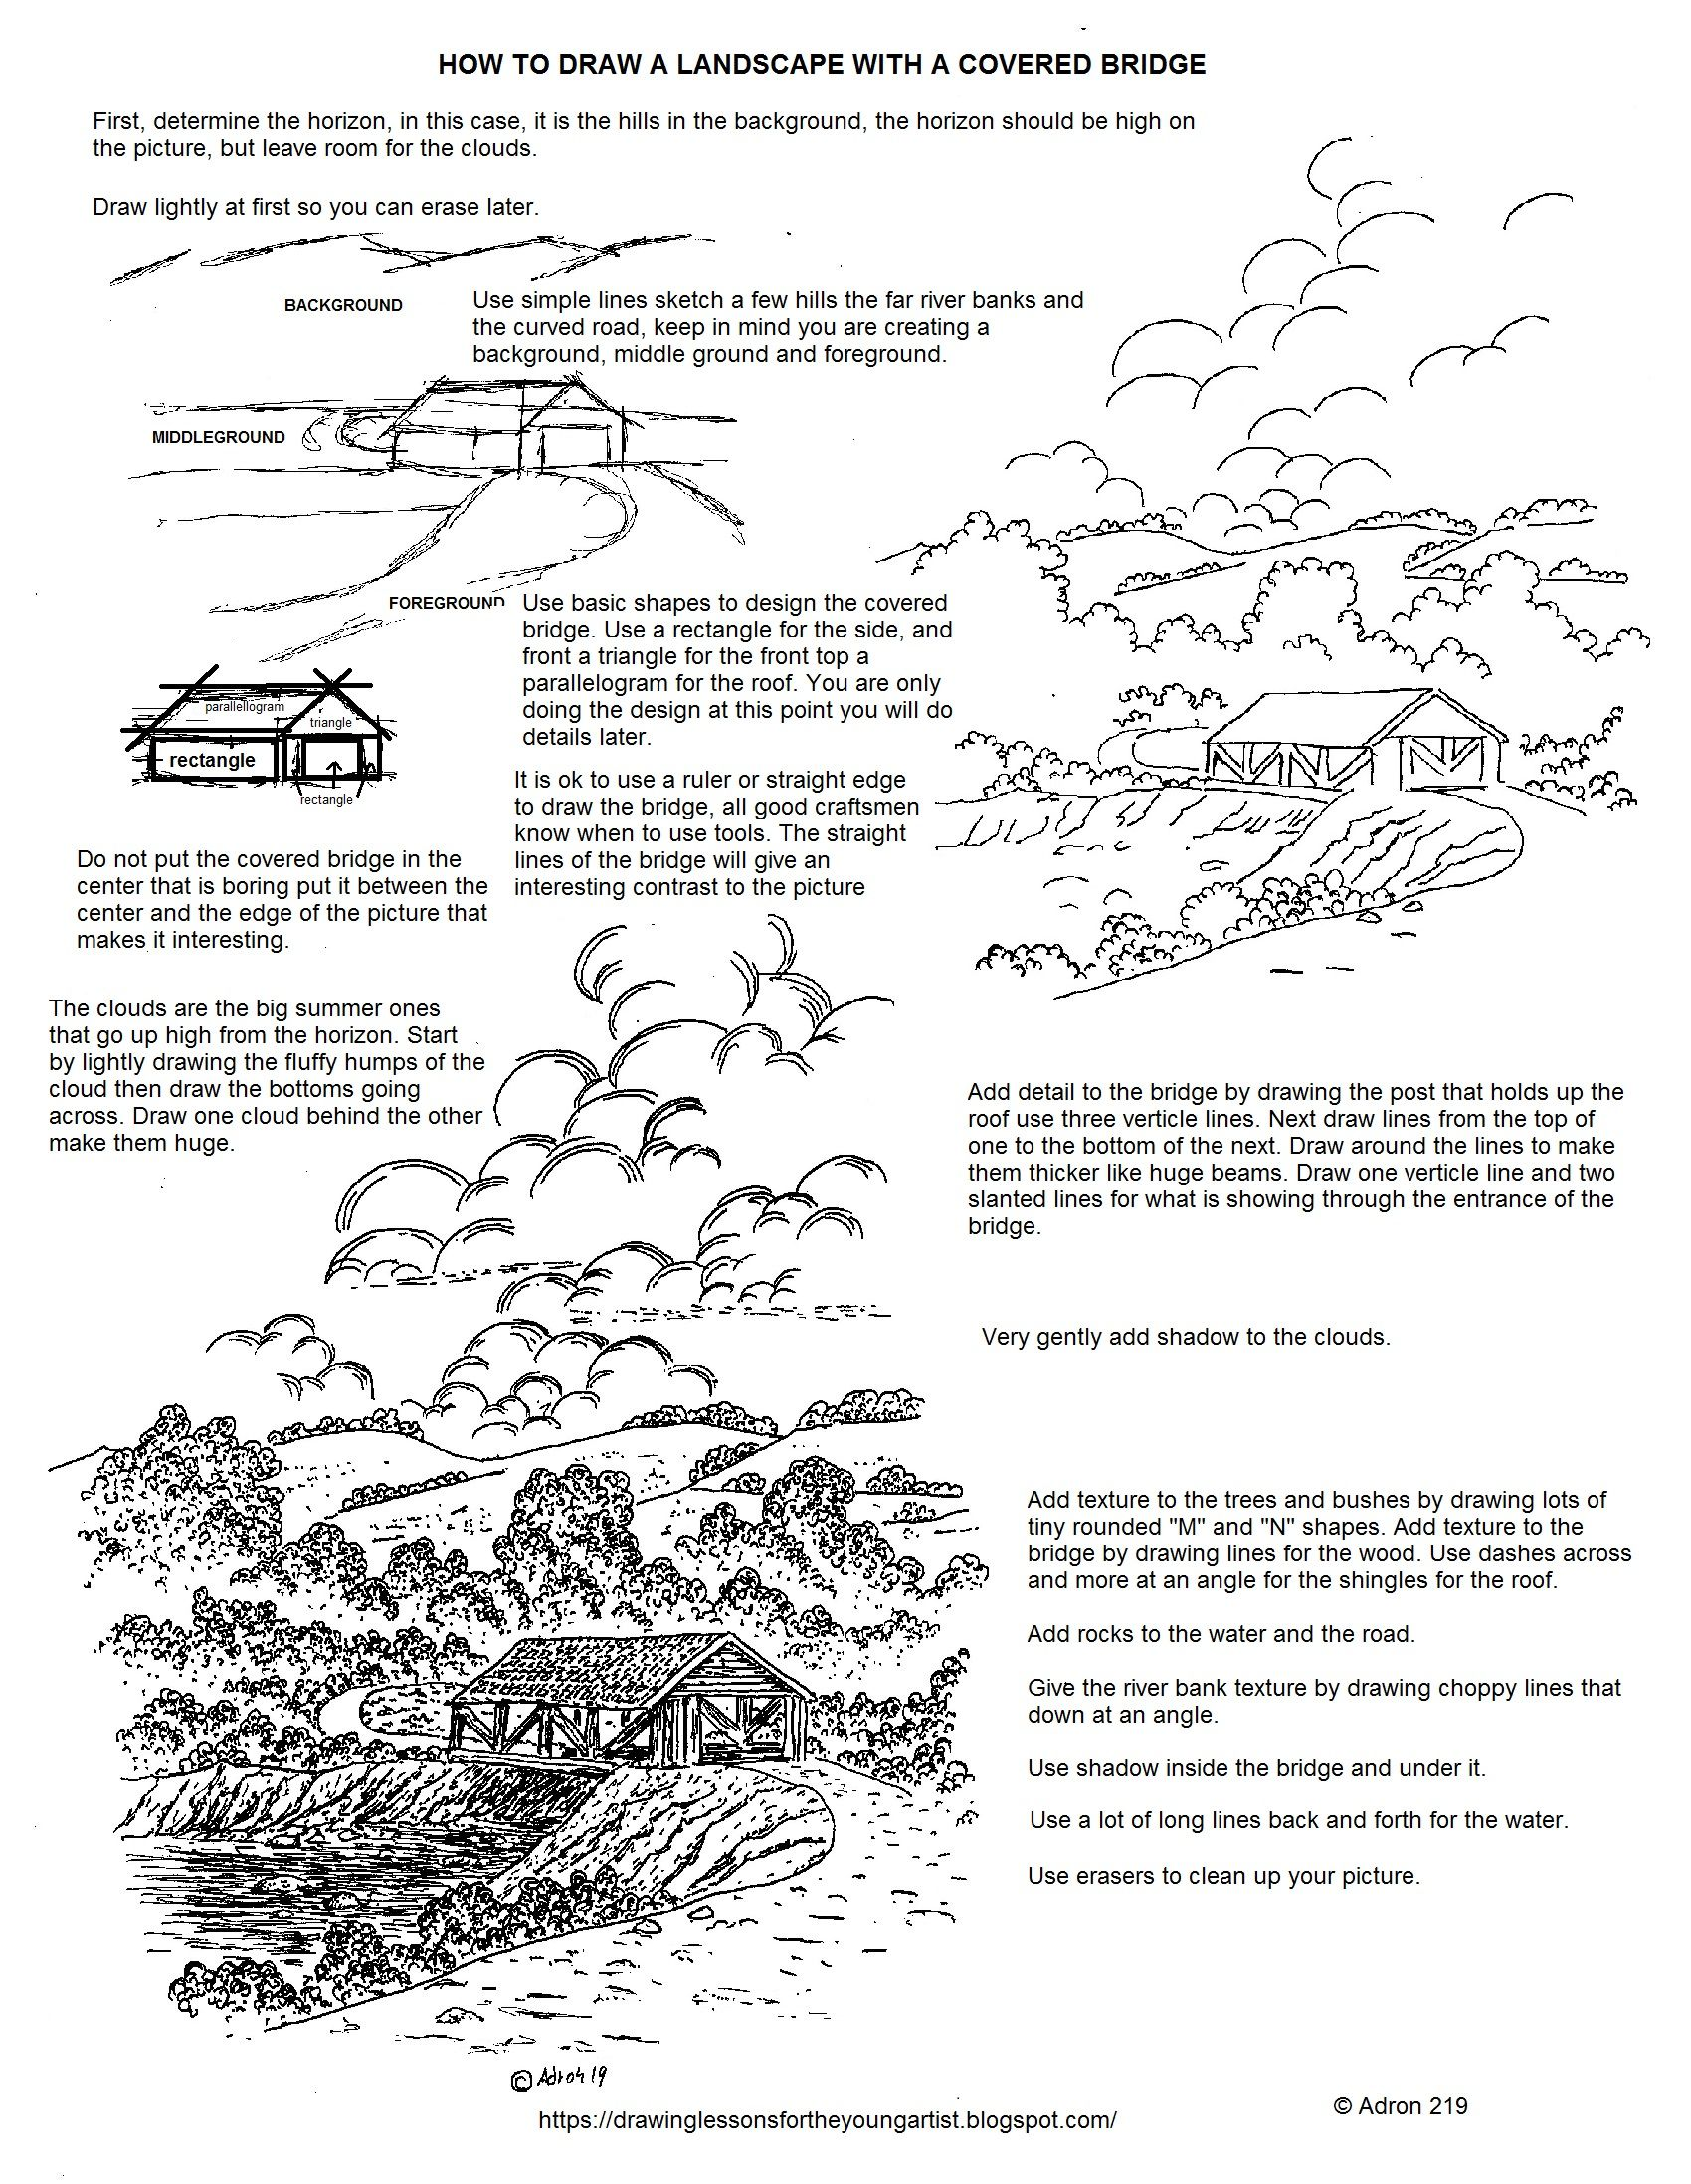 How To Draw A Landscape With A Covered Bridge Worksheet